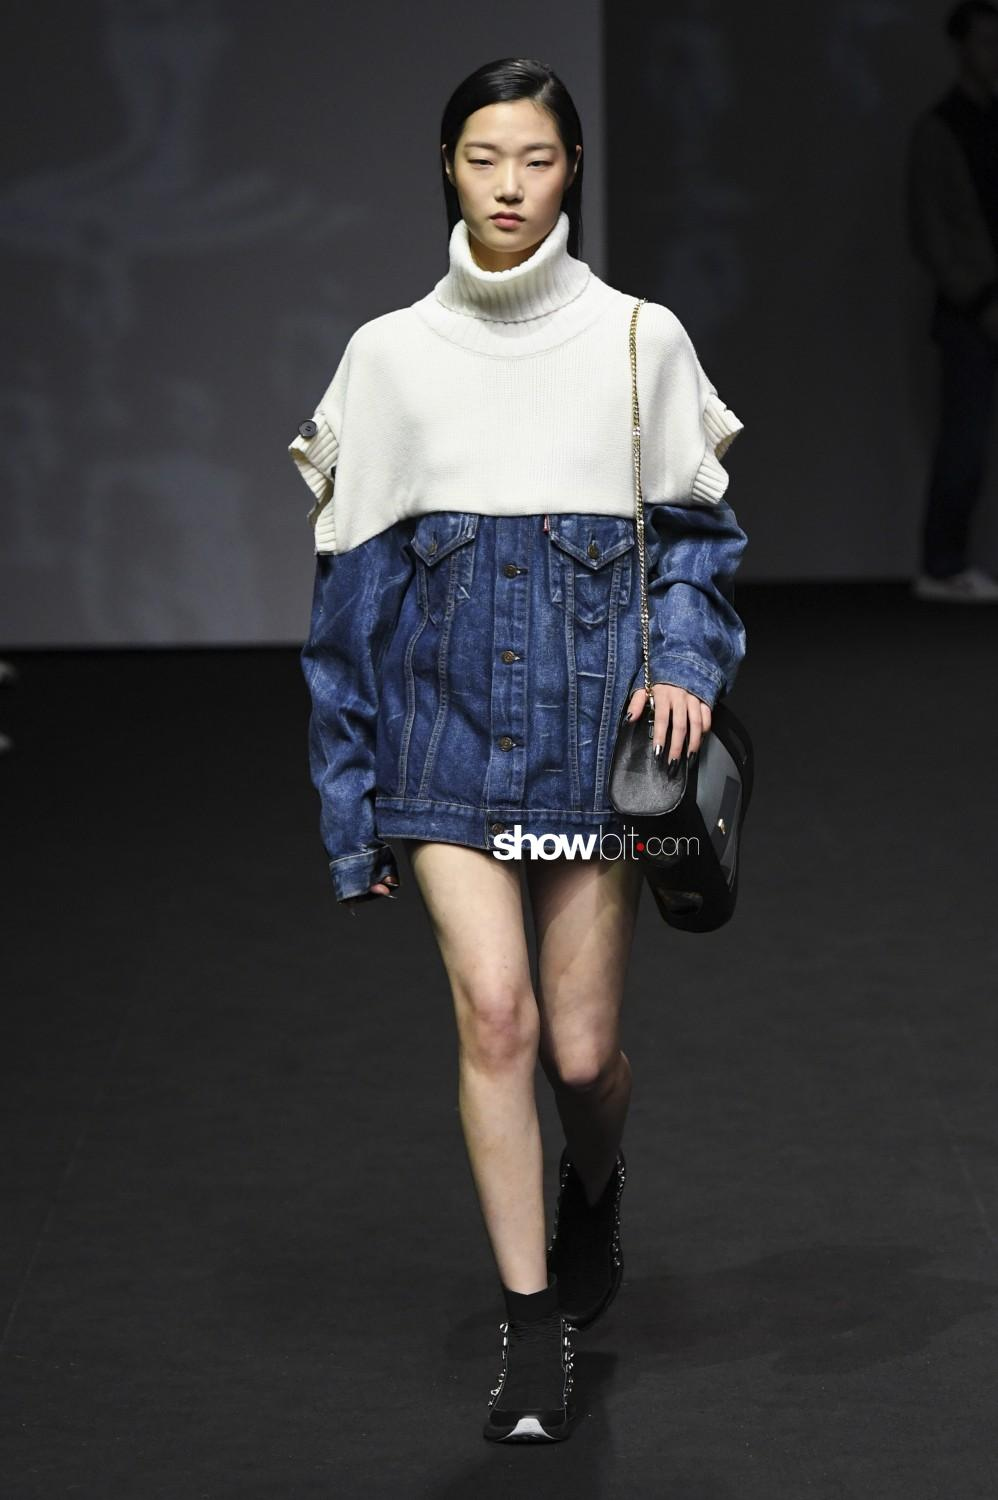 Ul Kin Men Women Fall Winter 2019 2020 Seoul